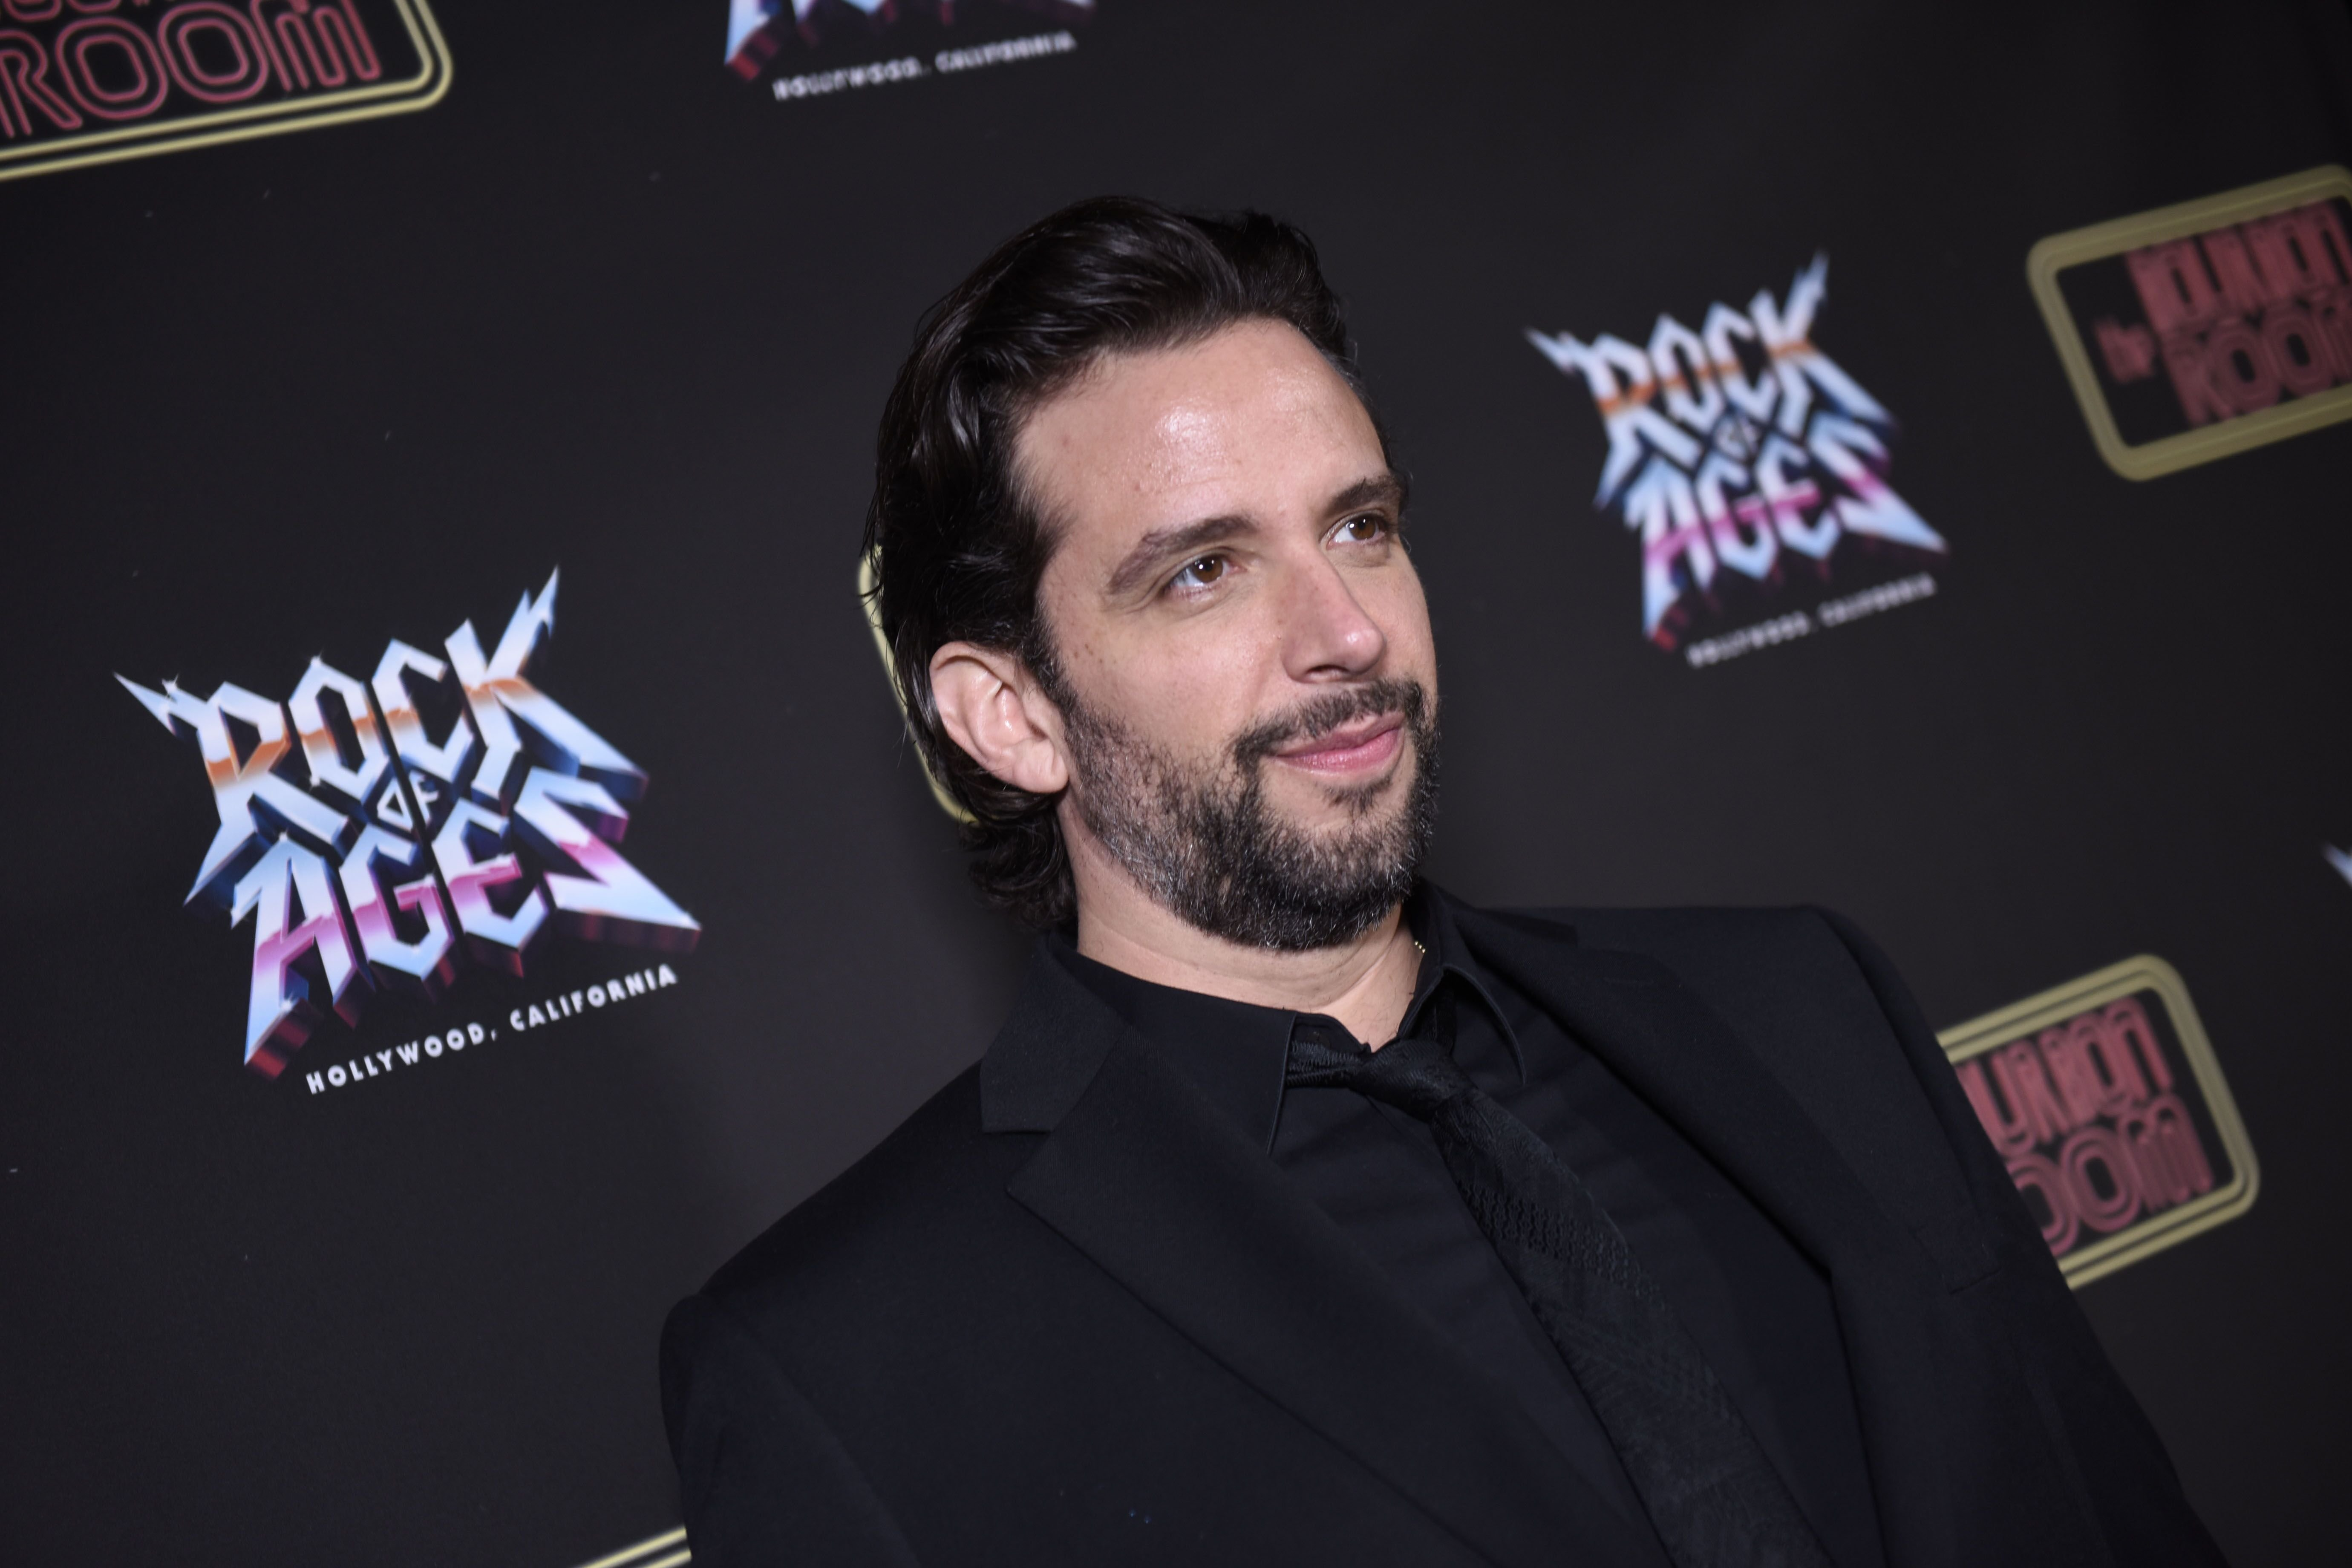 """Nick Cordero at the opening night of """"Rock Of Ages"""" at The Bourbon Room on January 15, 2020, in Hollywood, California 